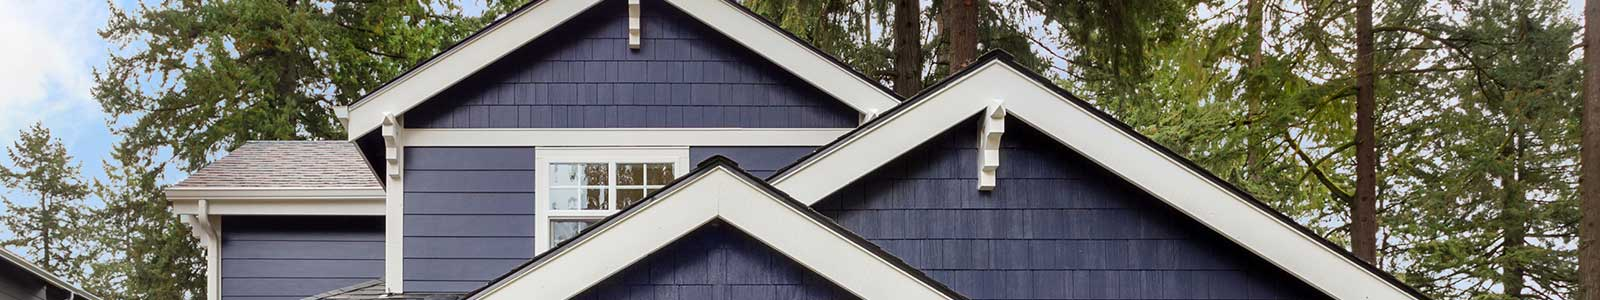 Roofing Siding Pat Noble Lumber Building Supplies